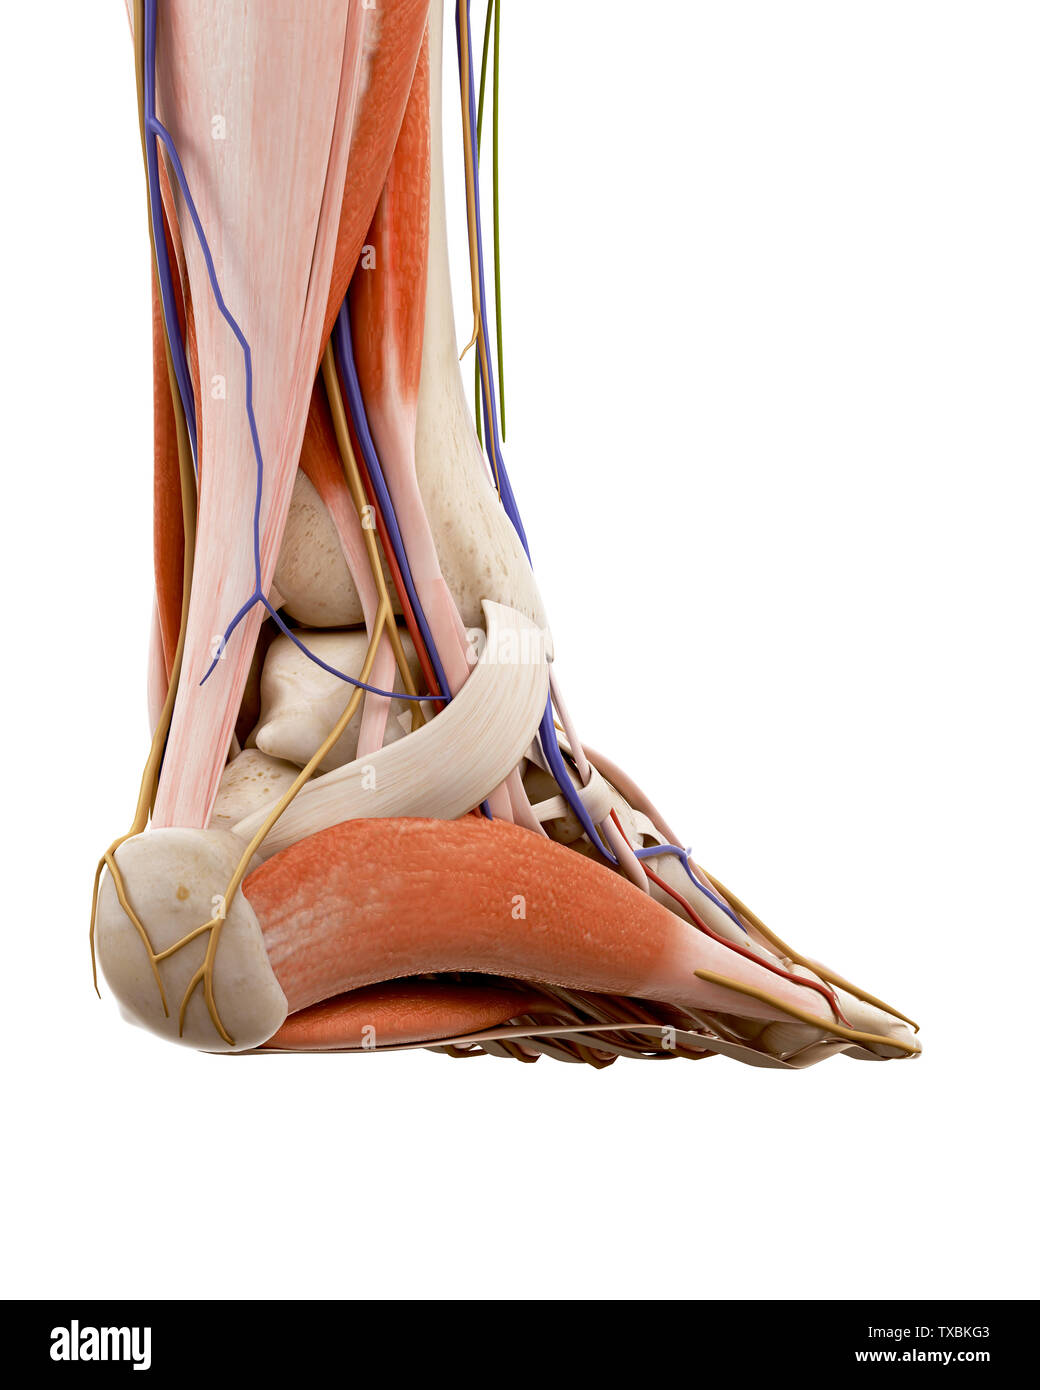 74b4148ba005 3d rendered medically accurate illustration of the human foot anatomy -  Stock Image